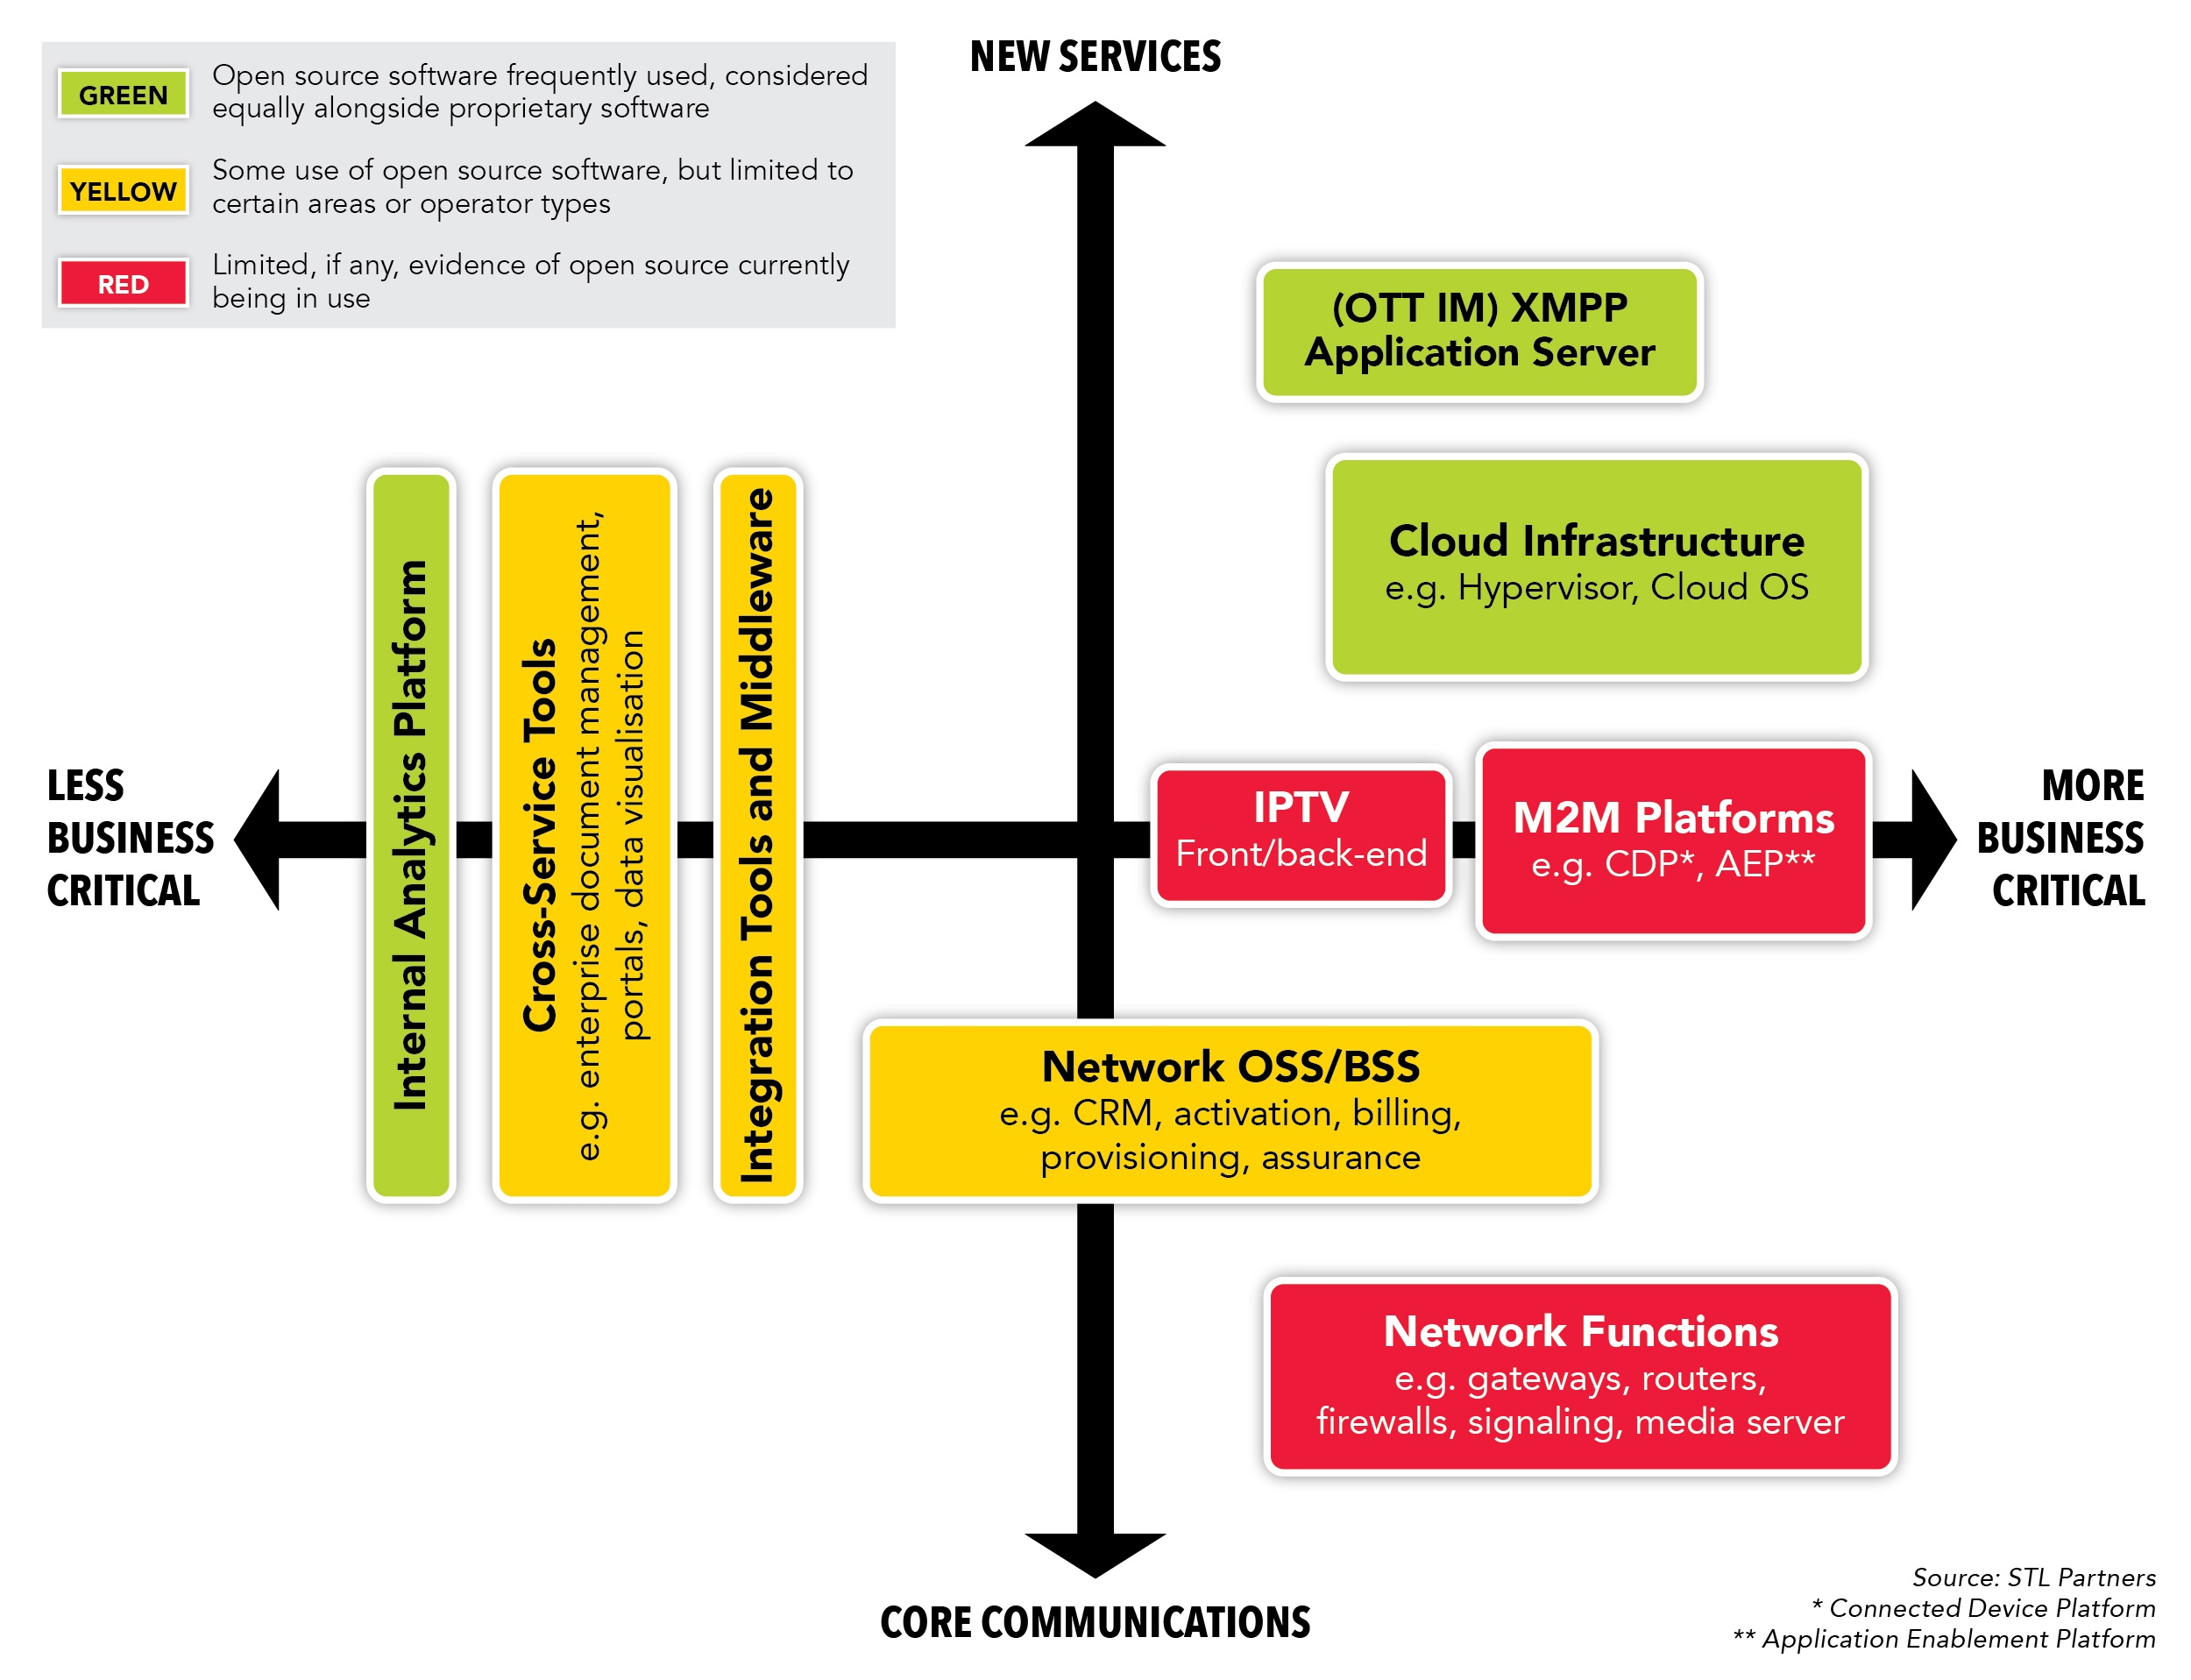 Open Source Software and NFV